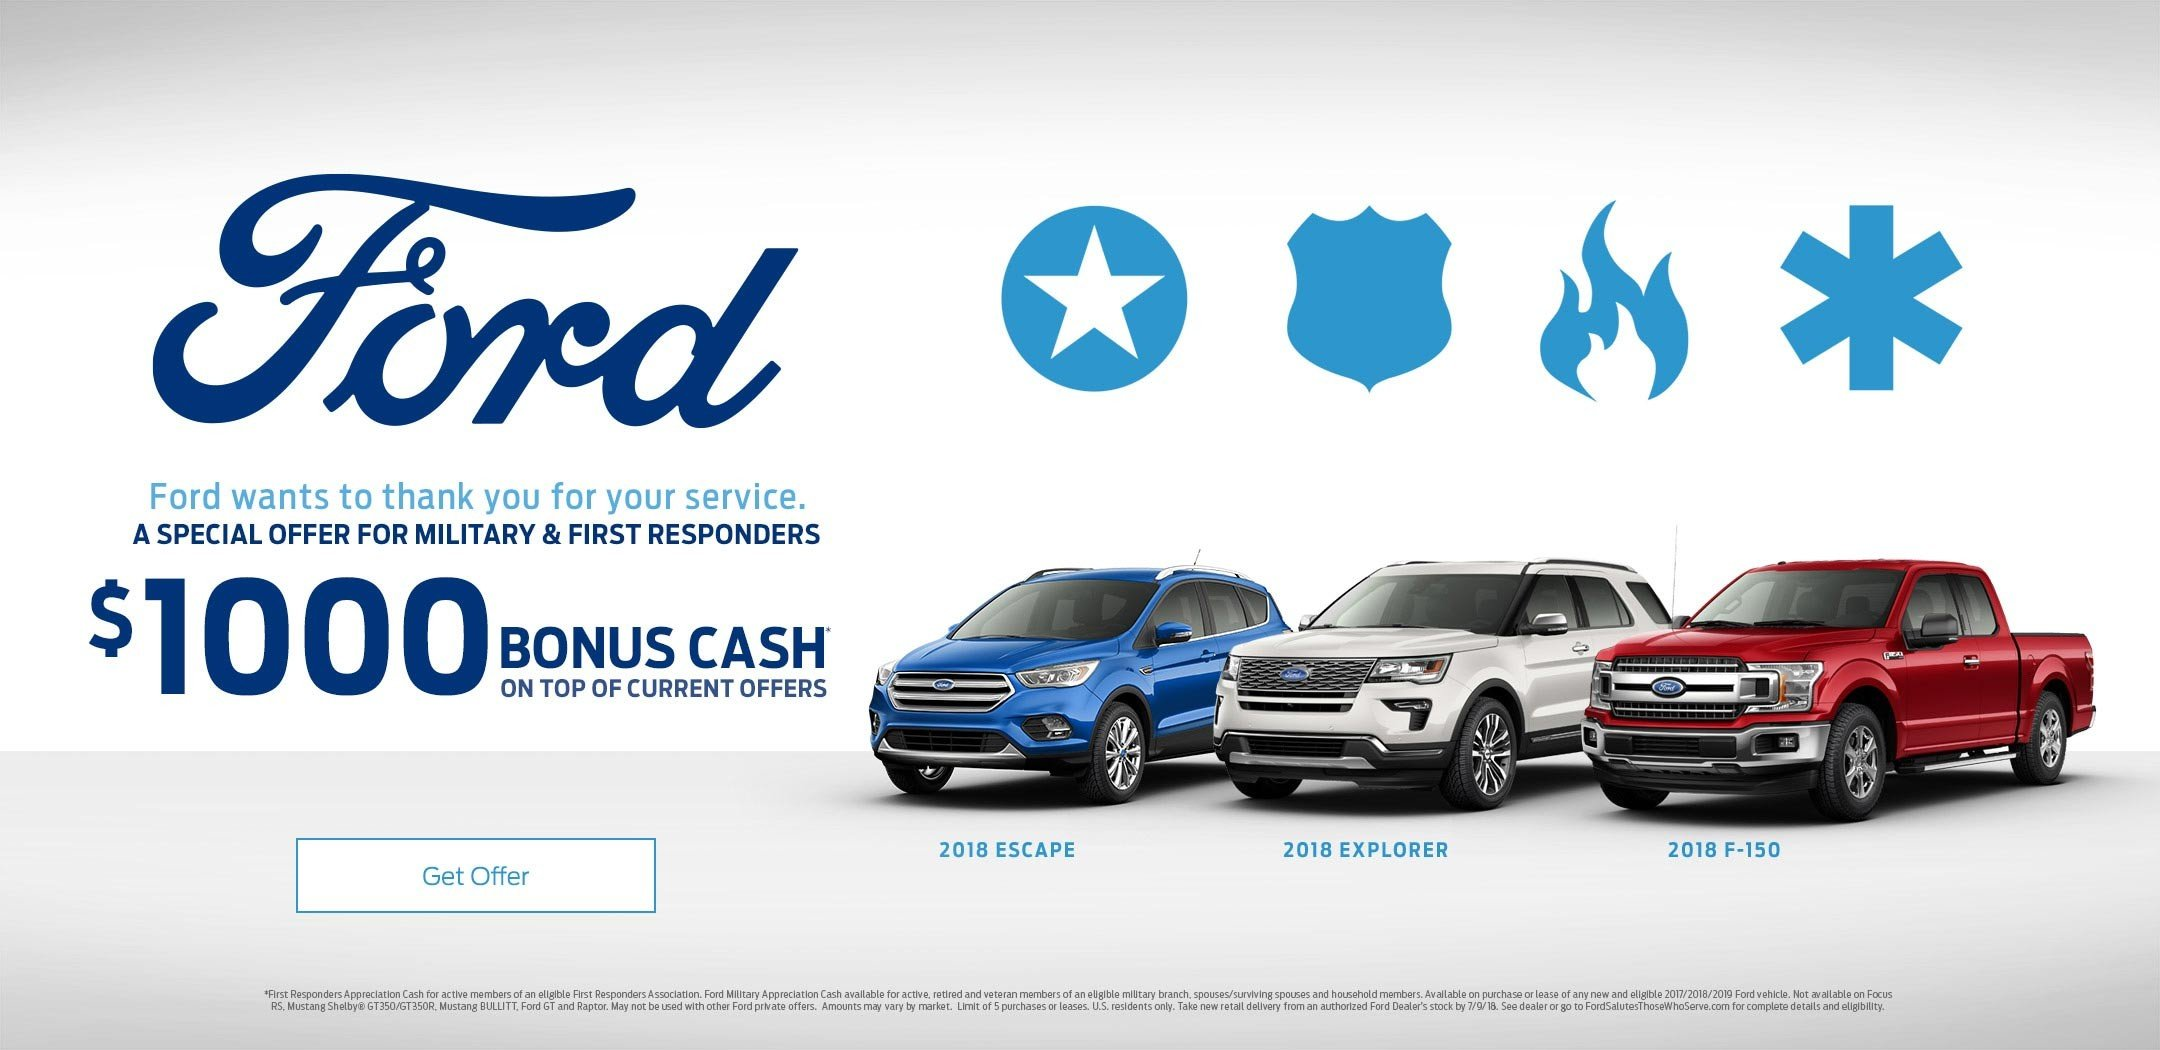 Ford military appreciation offer